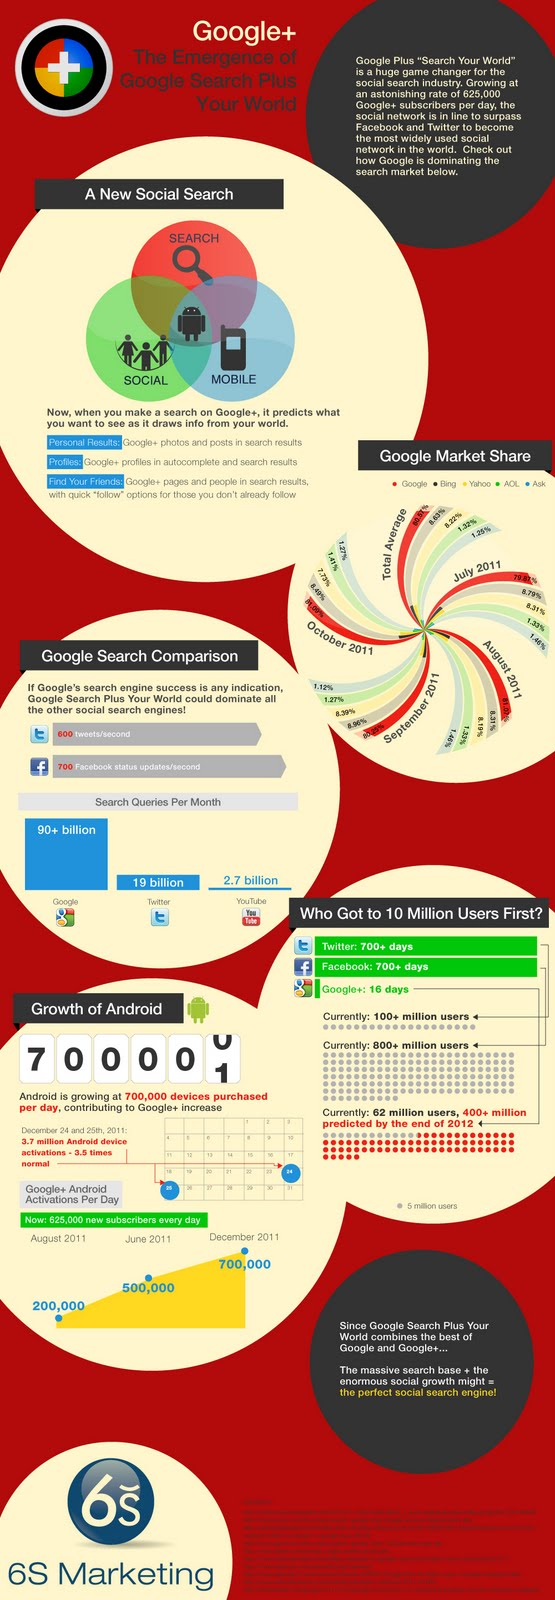 Tips for Internet Marketing - SEO Company in Using Google Plus